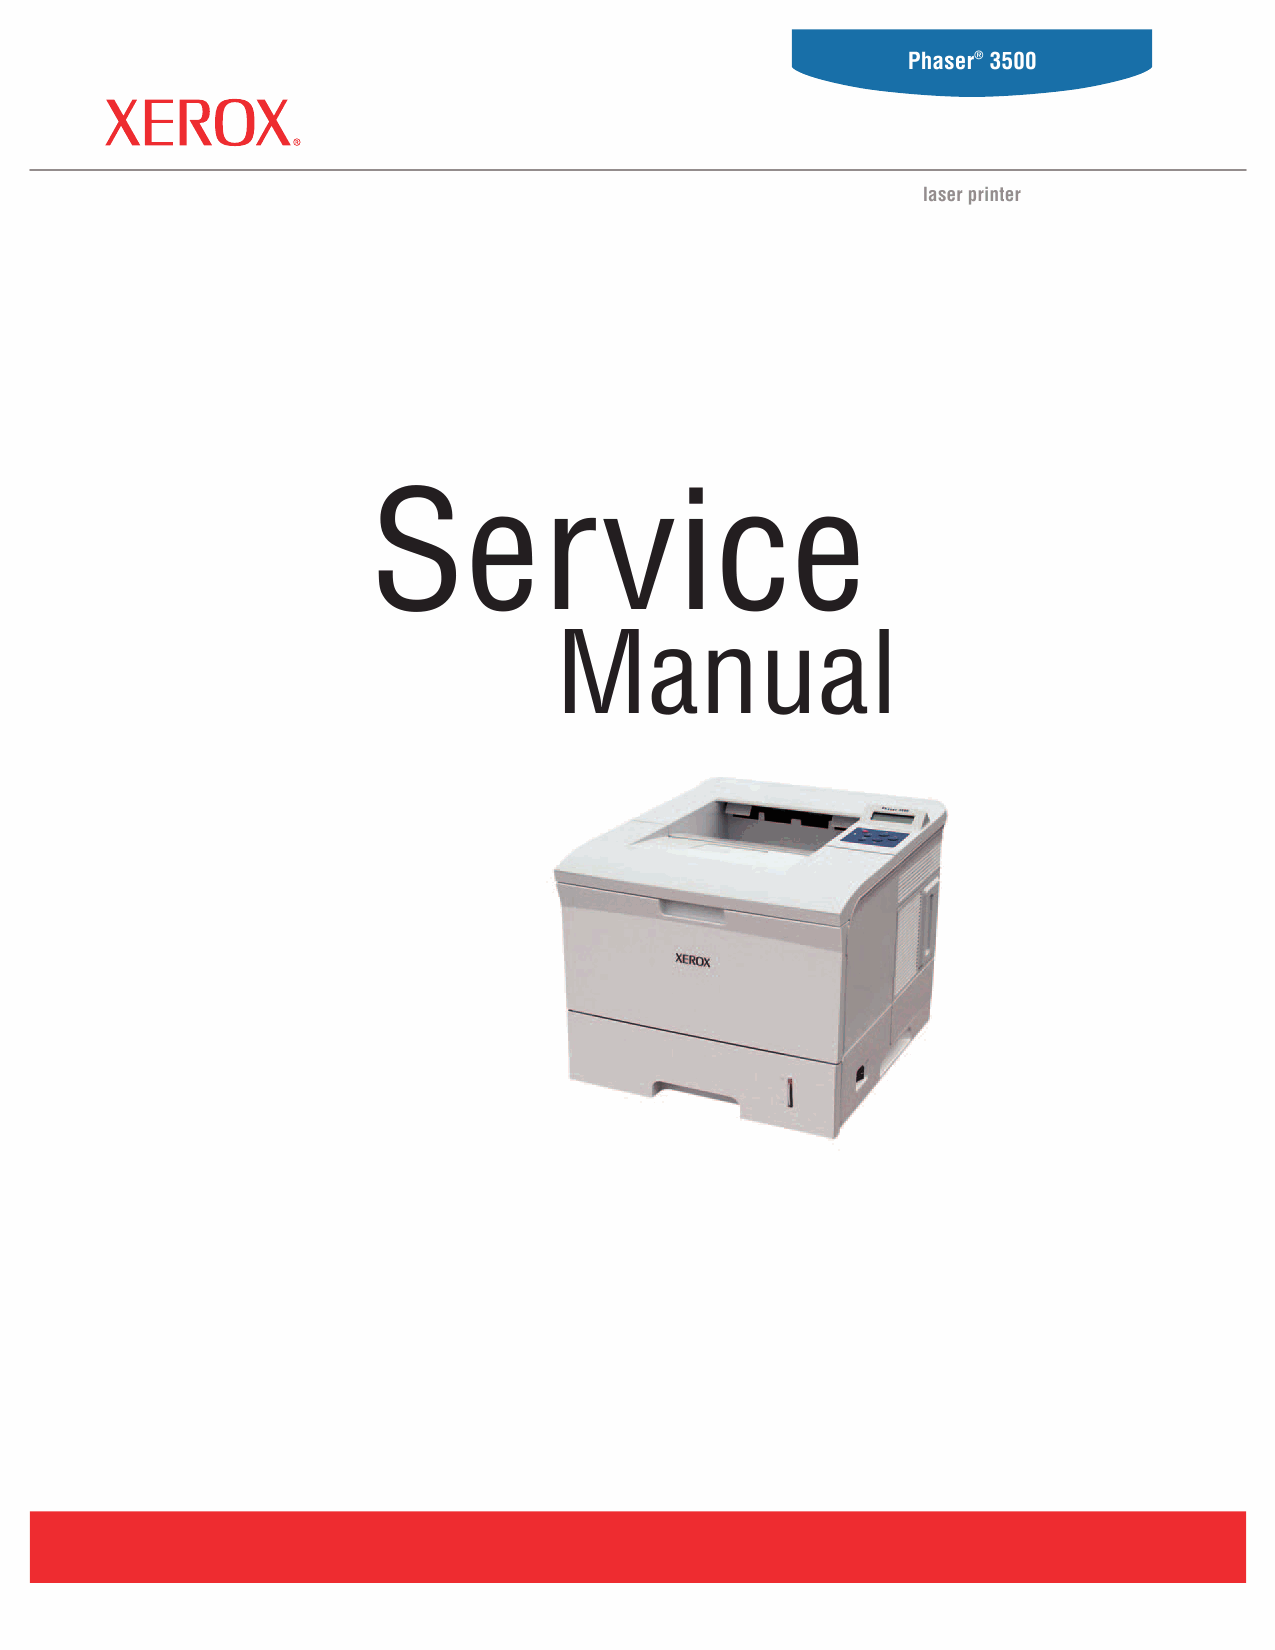 Xerox Phaser 3500 Parts List and Service Manual-1